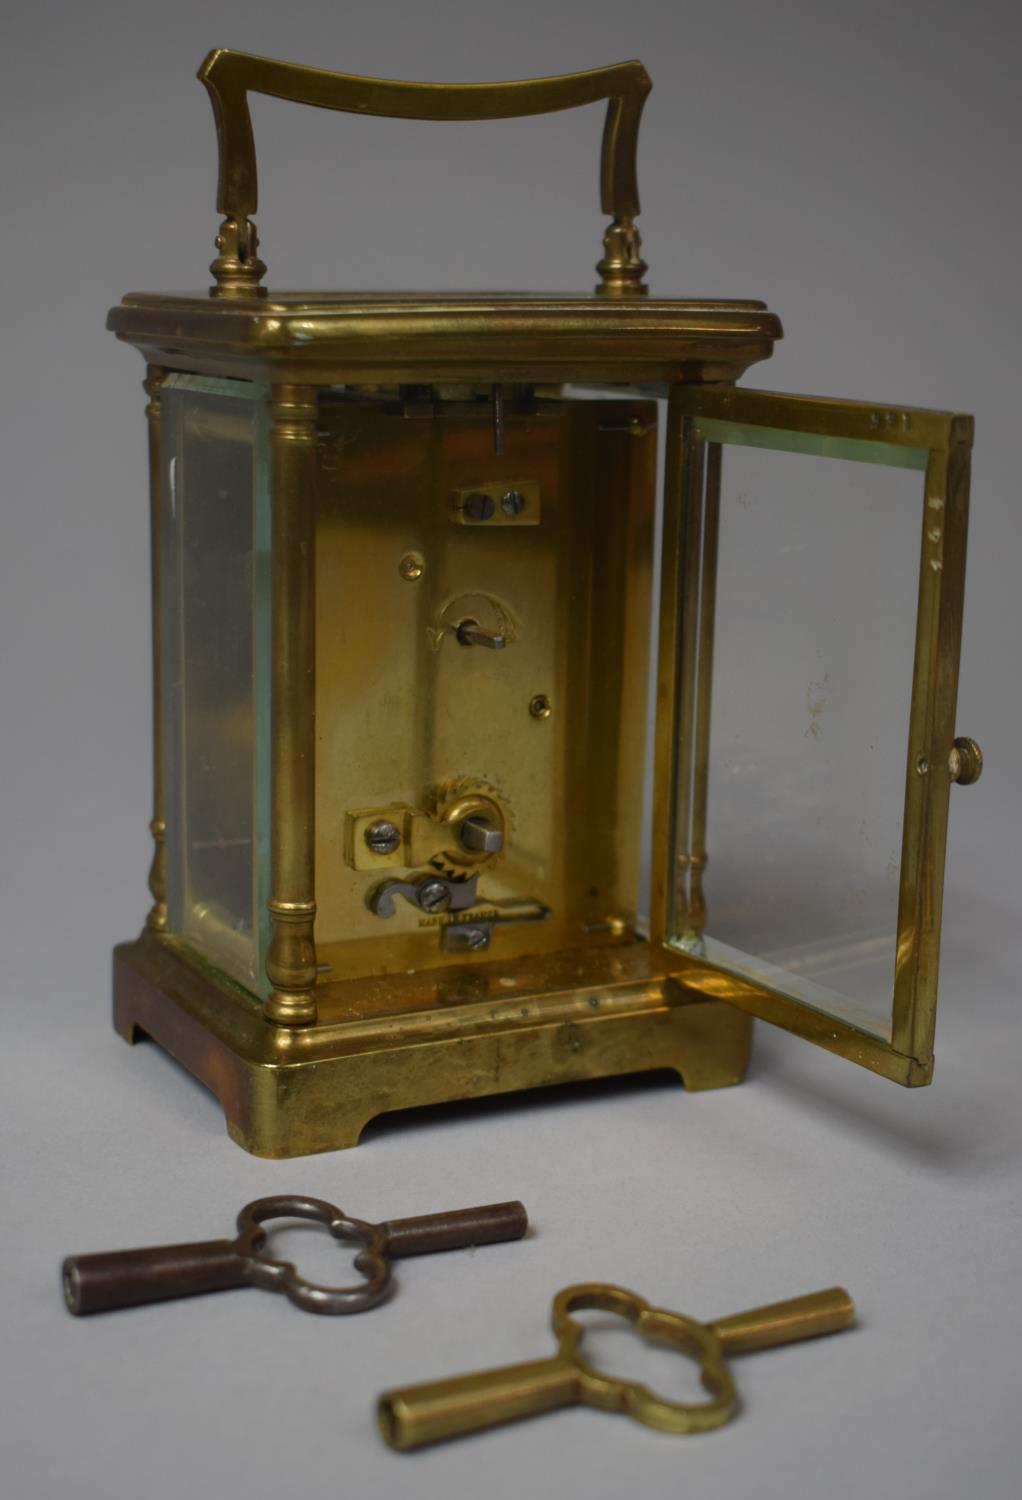 An Early/Mid 20th Century Brass Cased French Carriage Clock, Movement In Need of Attention, 12.5cm - Image 2 of 2